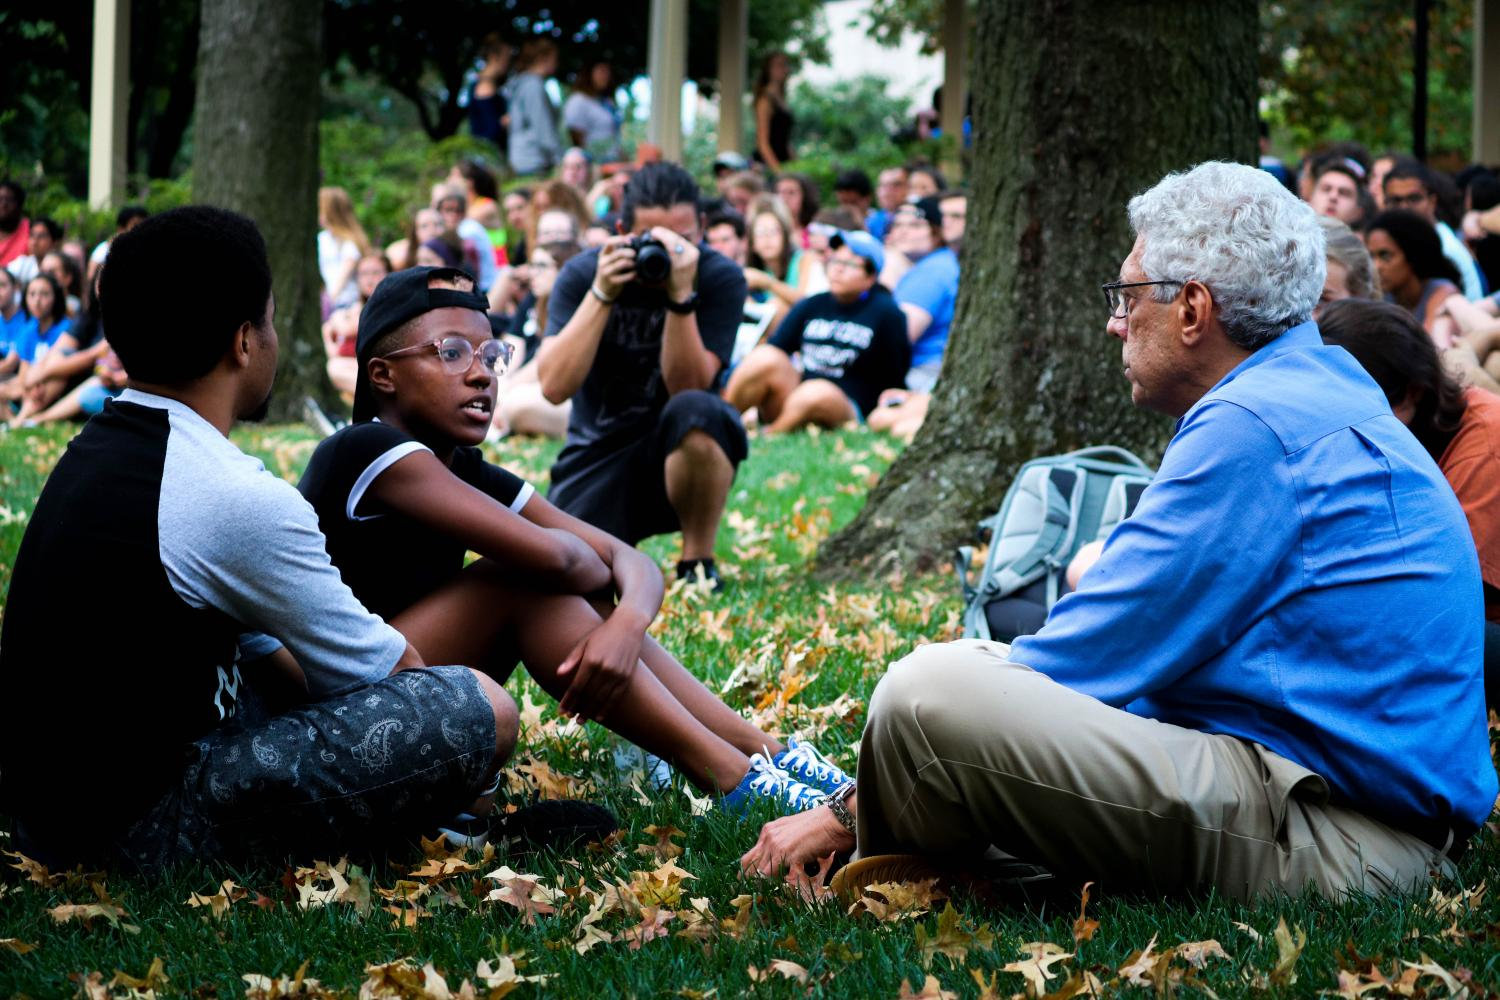 SLU+president+Dr.+Fred+Pestello+joins+students+Tre+Watterson+and+Mya+Petty+to+listen+to+their+concerns+related+to+both+the+Jason+Stockley+verdict+and+the+issues+they+face+as+students+of+color+on+campus.